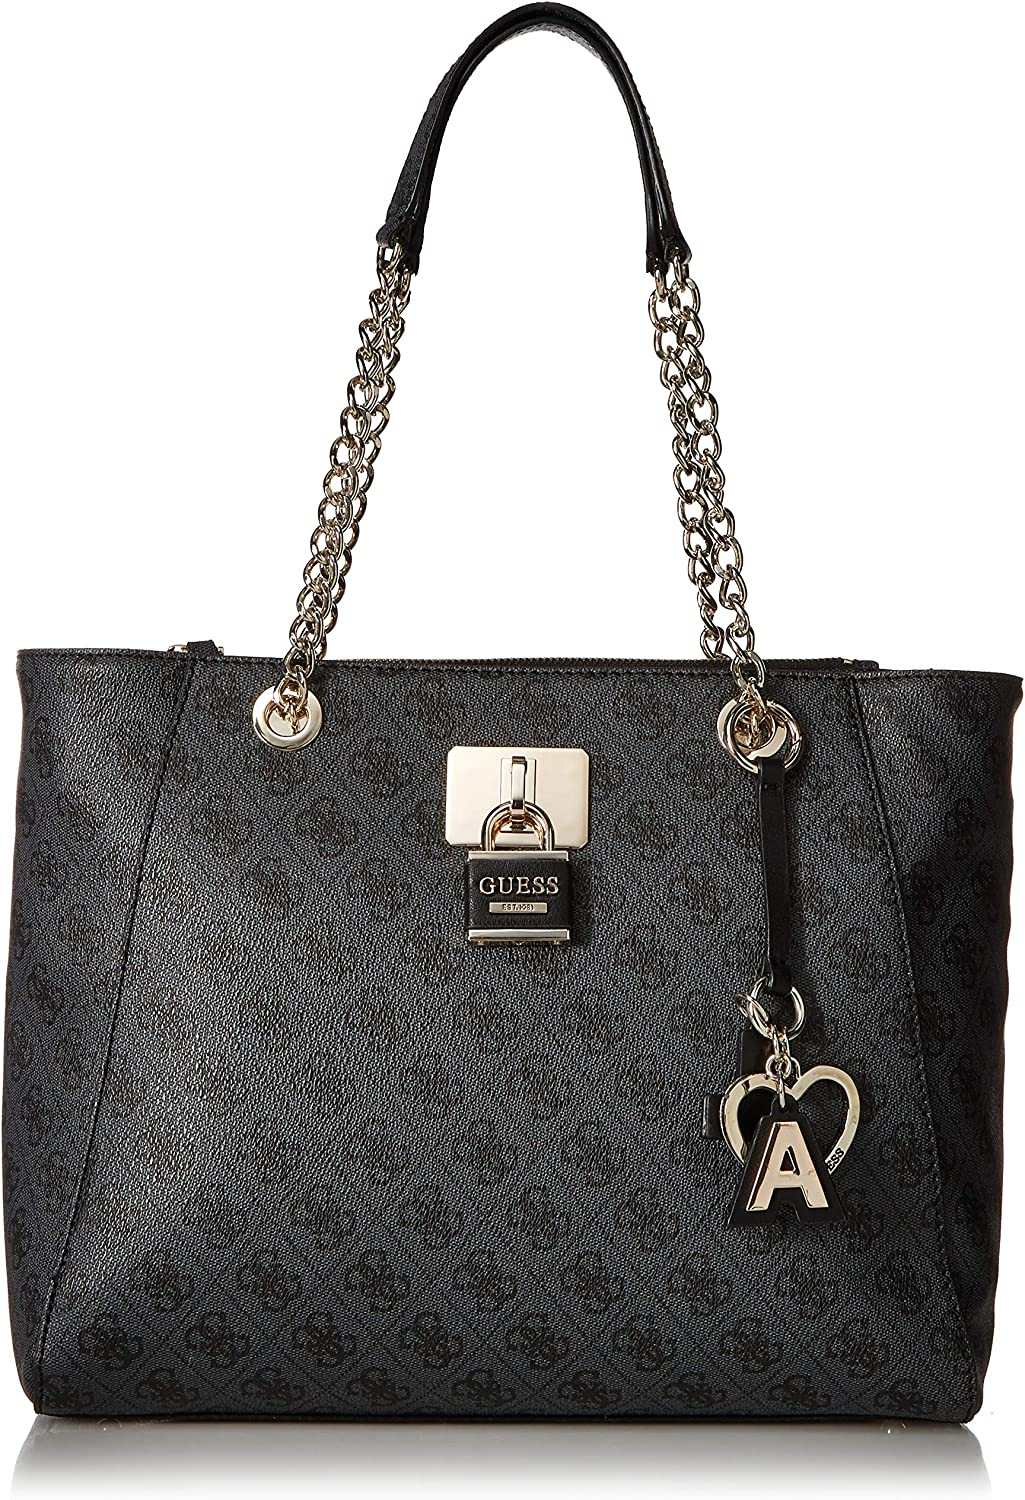 Guess BORSA DONNA MOD. DOWNTOWN COOL TOTE IN ECOPELLE COL